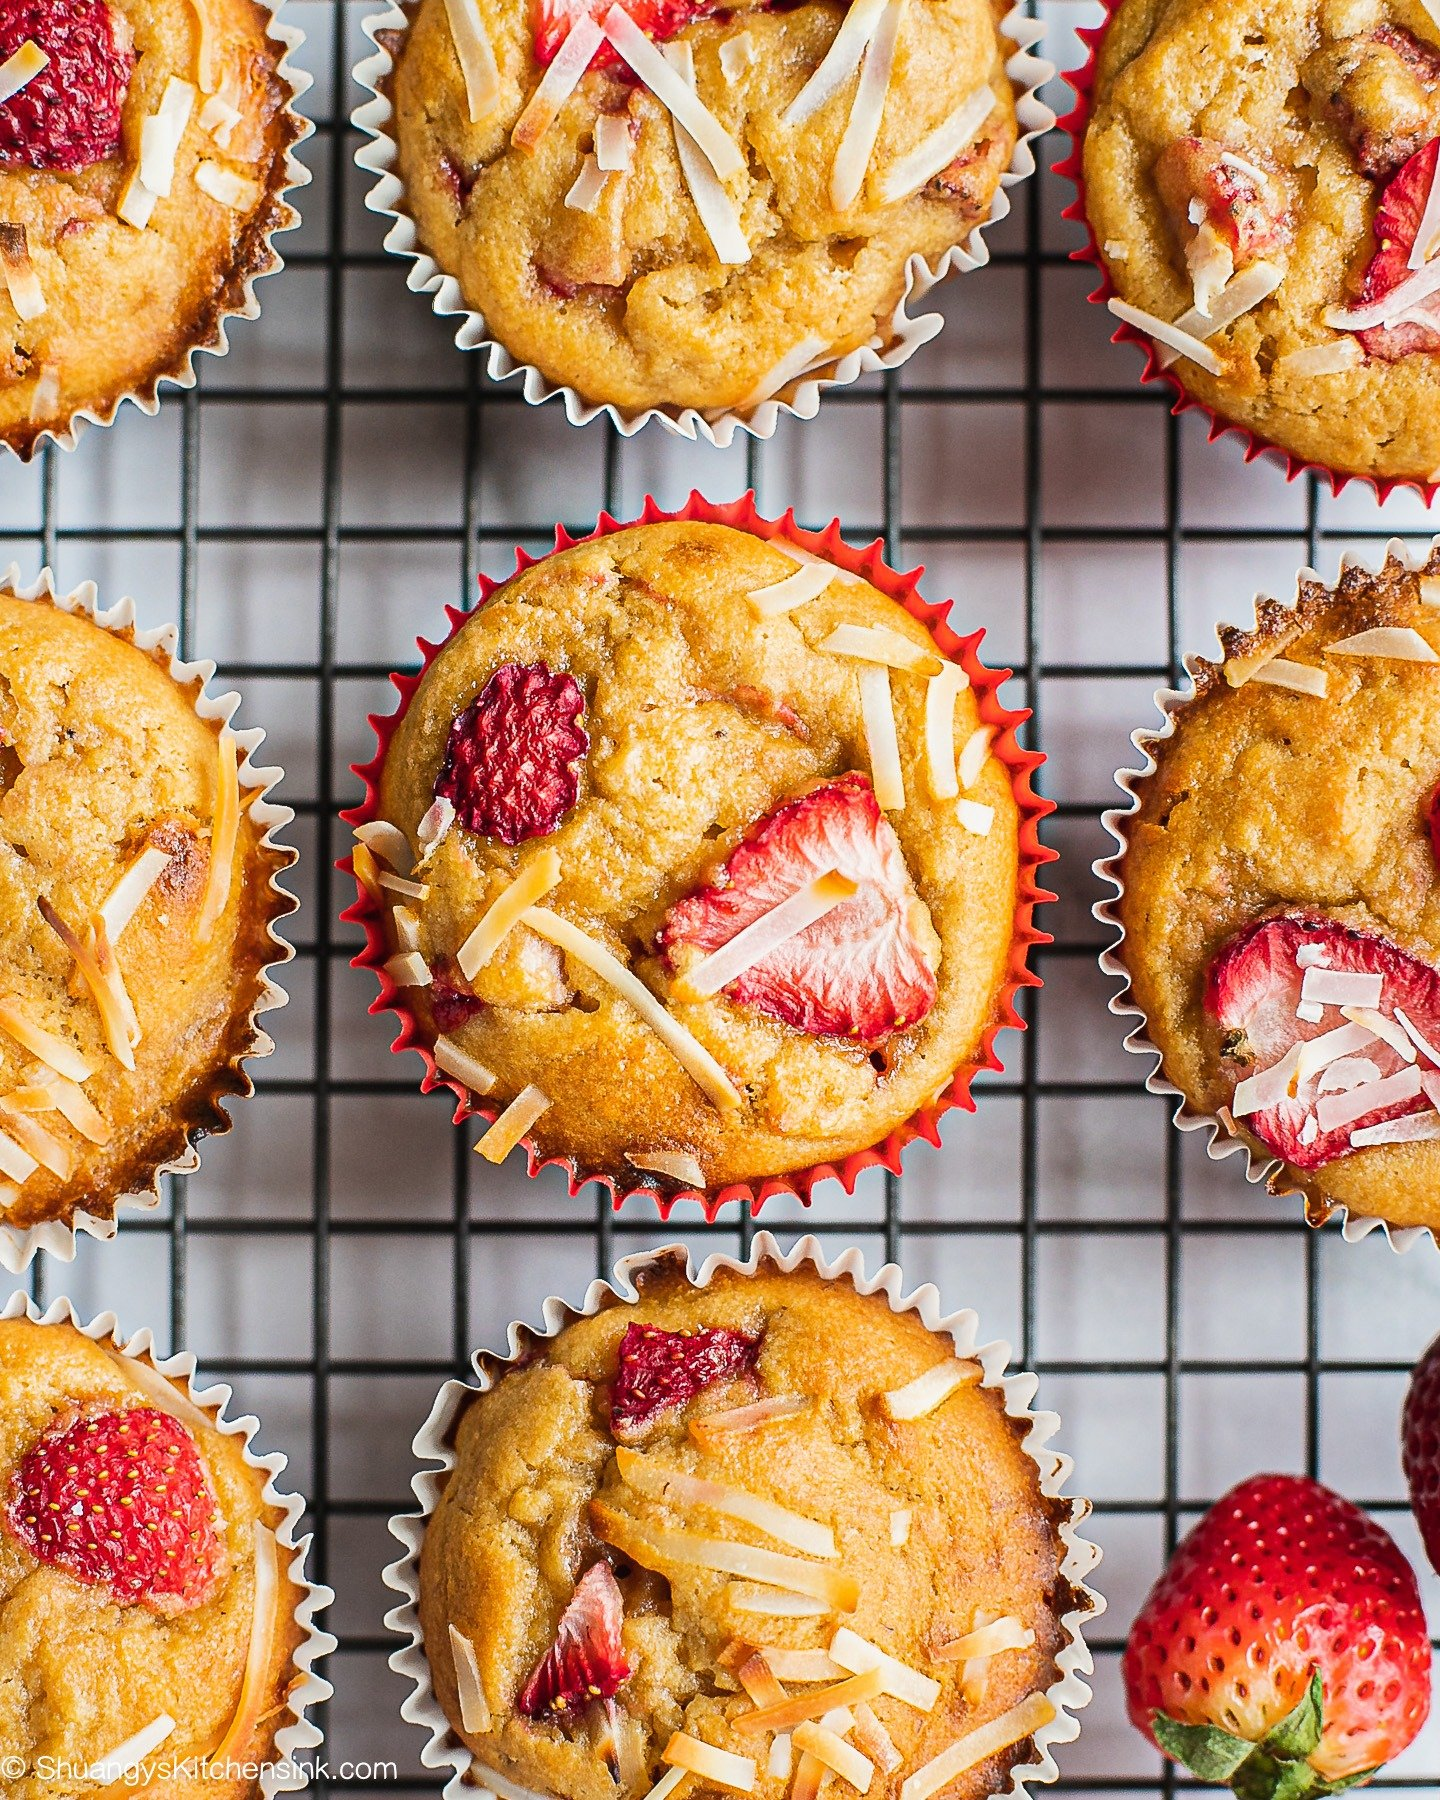 A batch of freshly baked strawberry muffins on a cooling rack. There are a few pieces of fresh strawberries on the side.